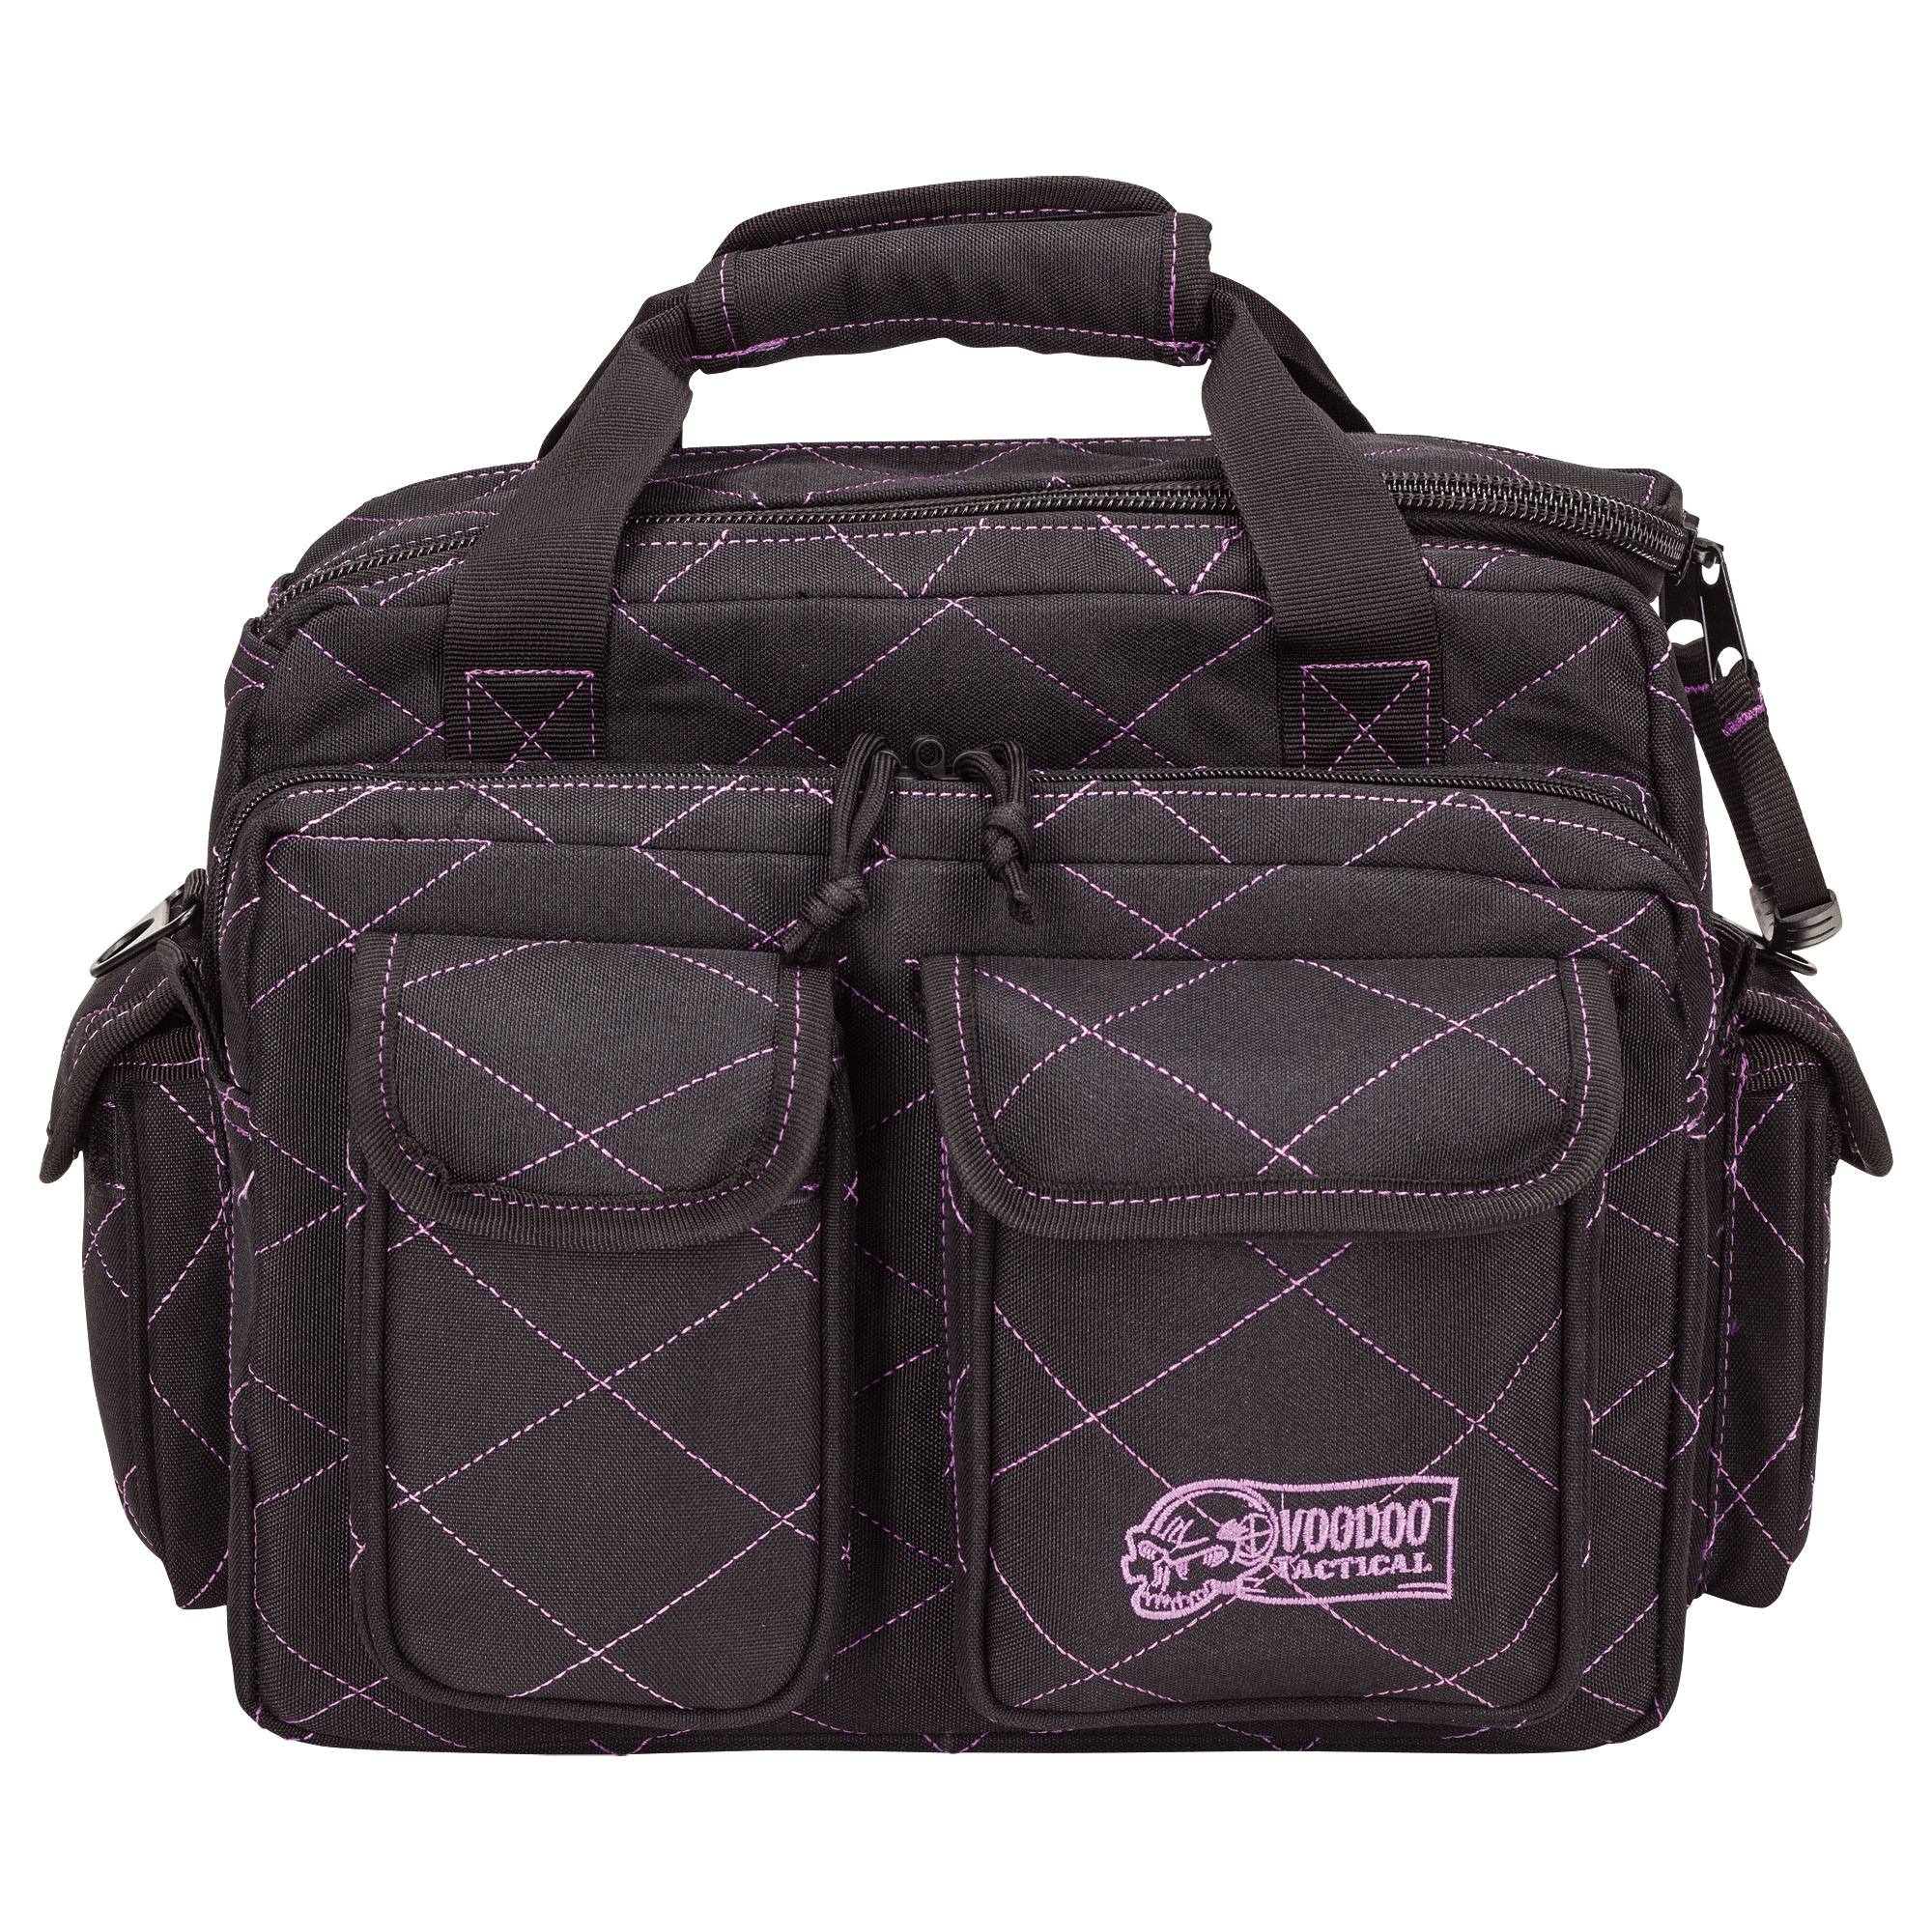 Voodoo Standard Scorpion Range Bag (Equipment Bags Category)